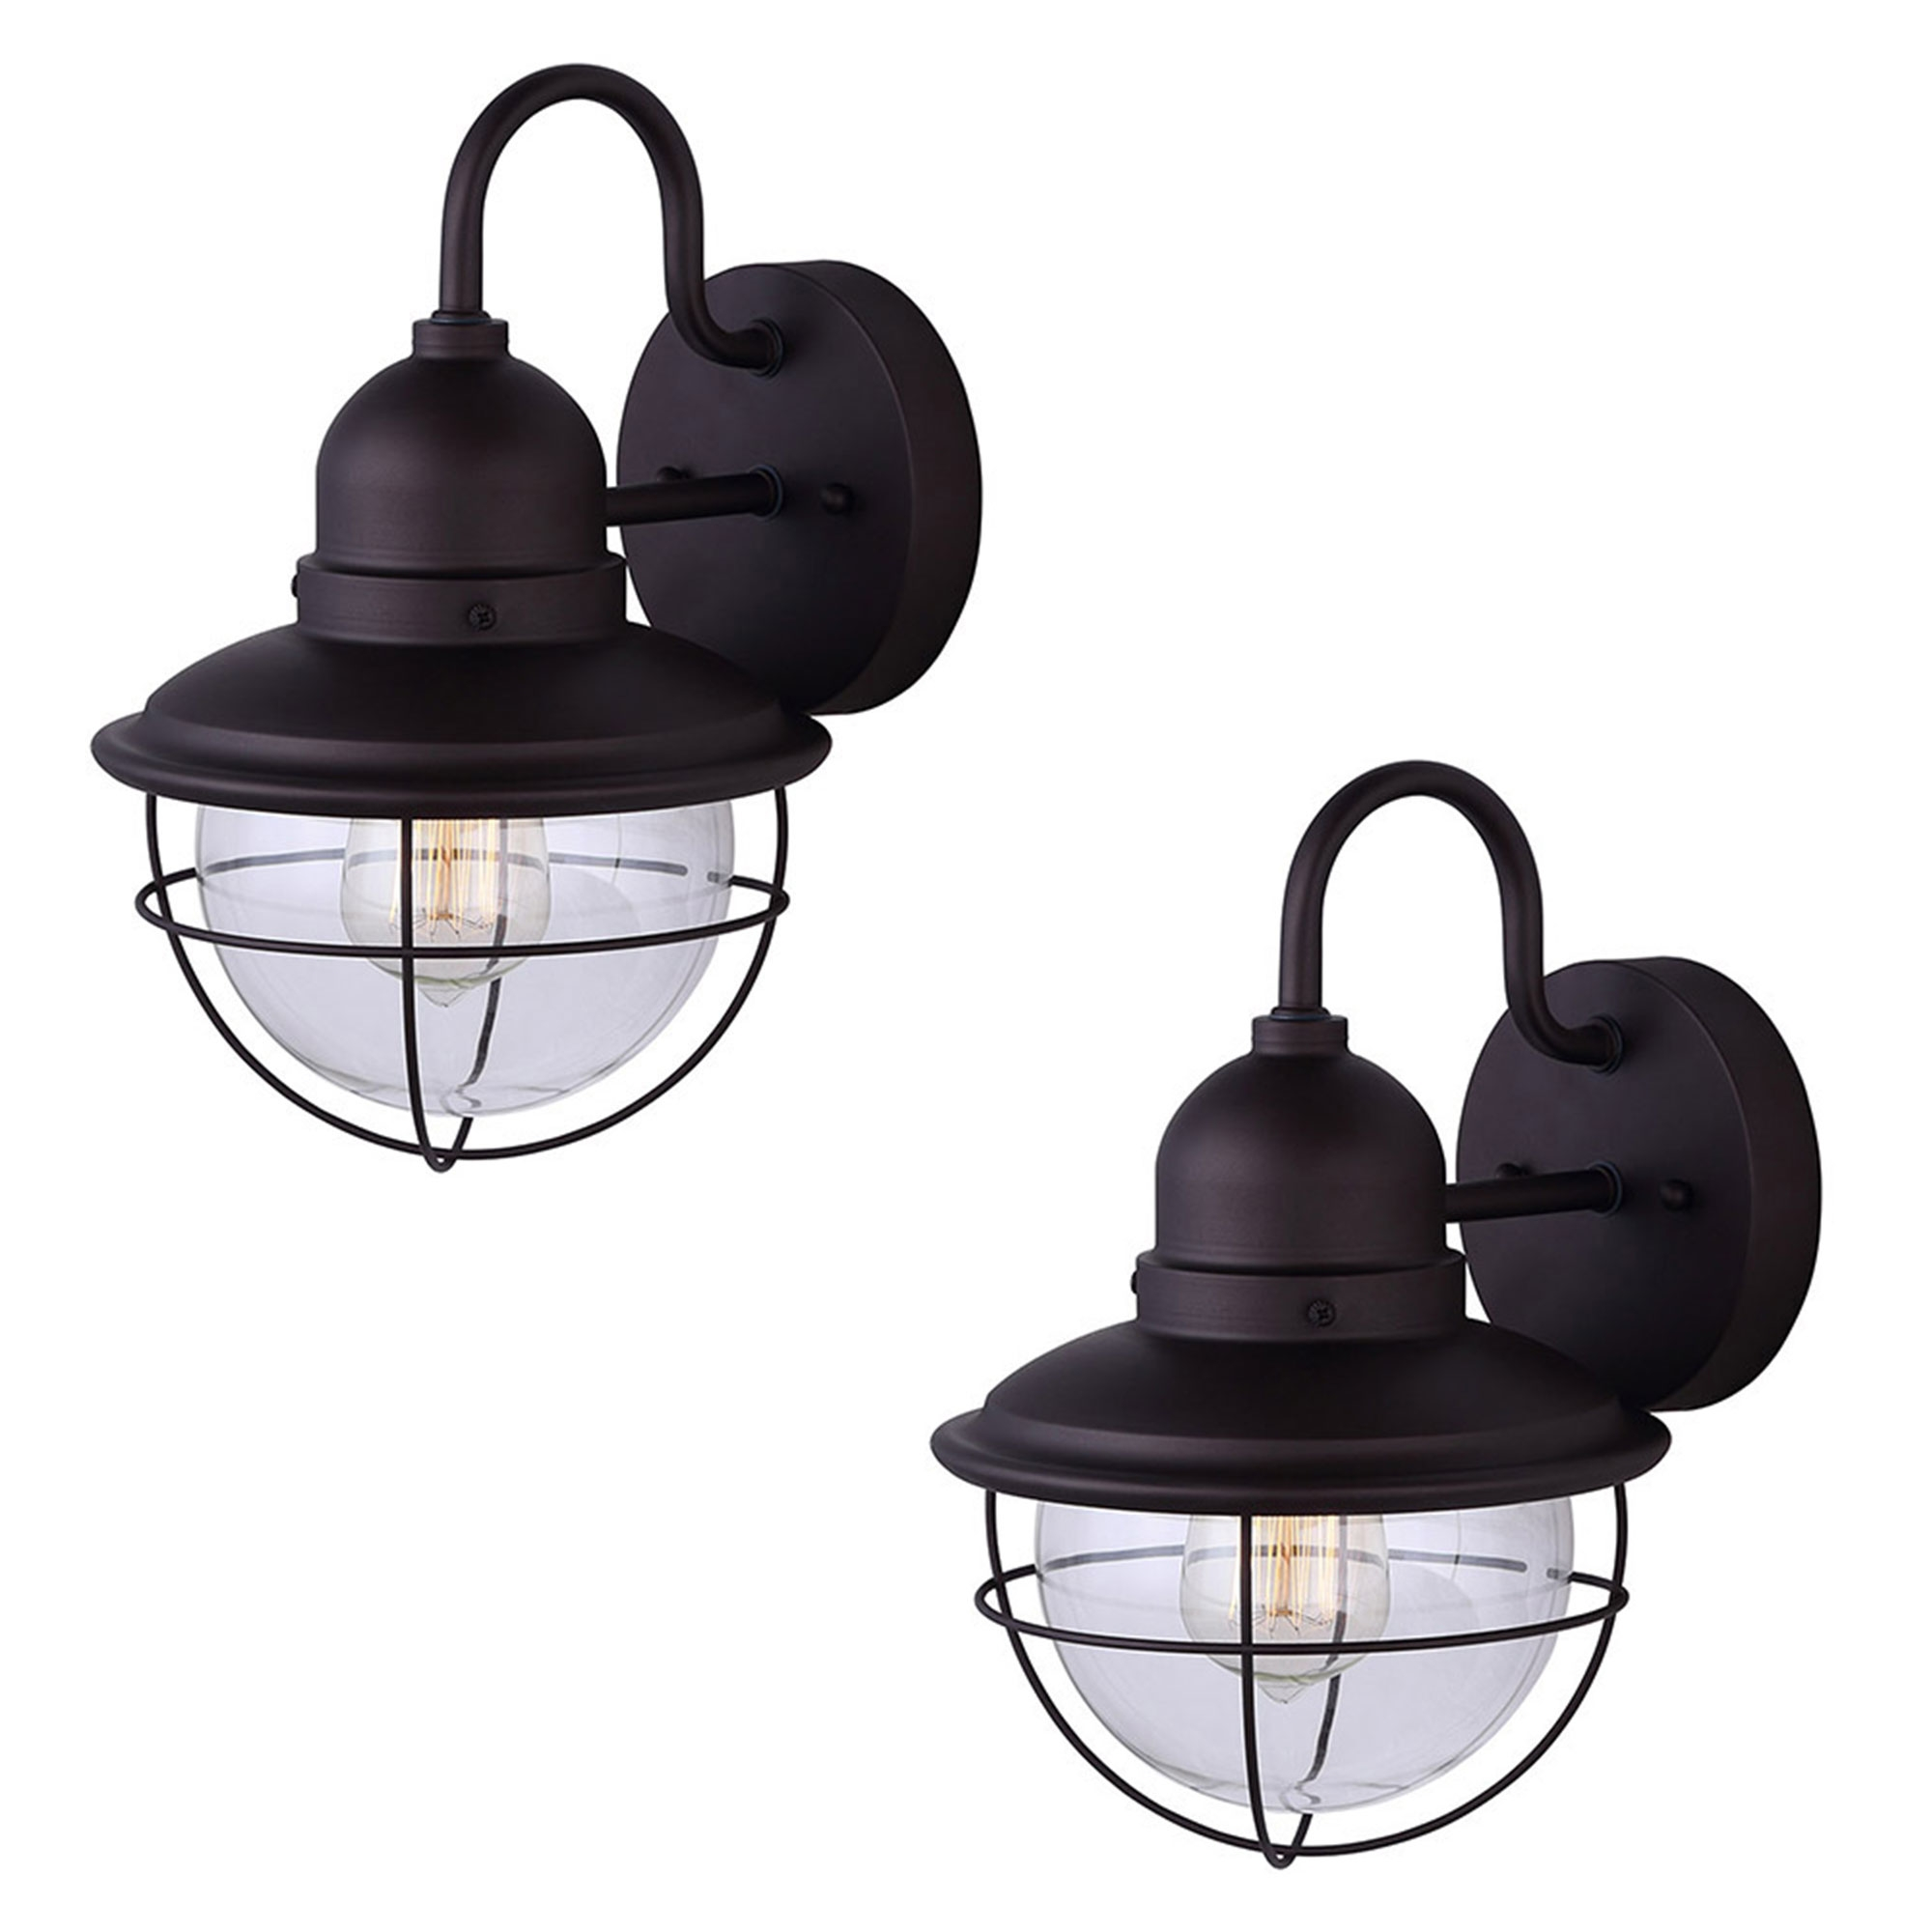 2 Pack of Exterior Outdoor Cage Light Vintage Bulb Fixture Sconce, Oil Rubbed Bronze... by HowPlumb